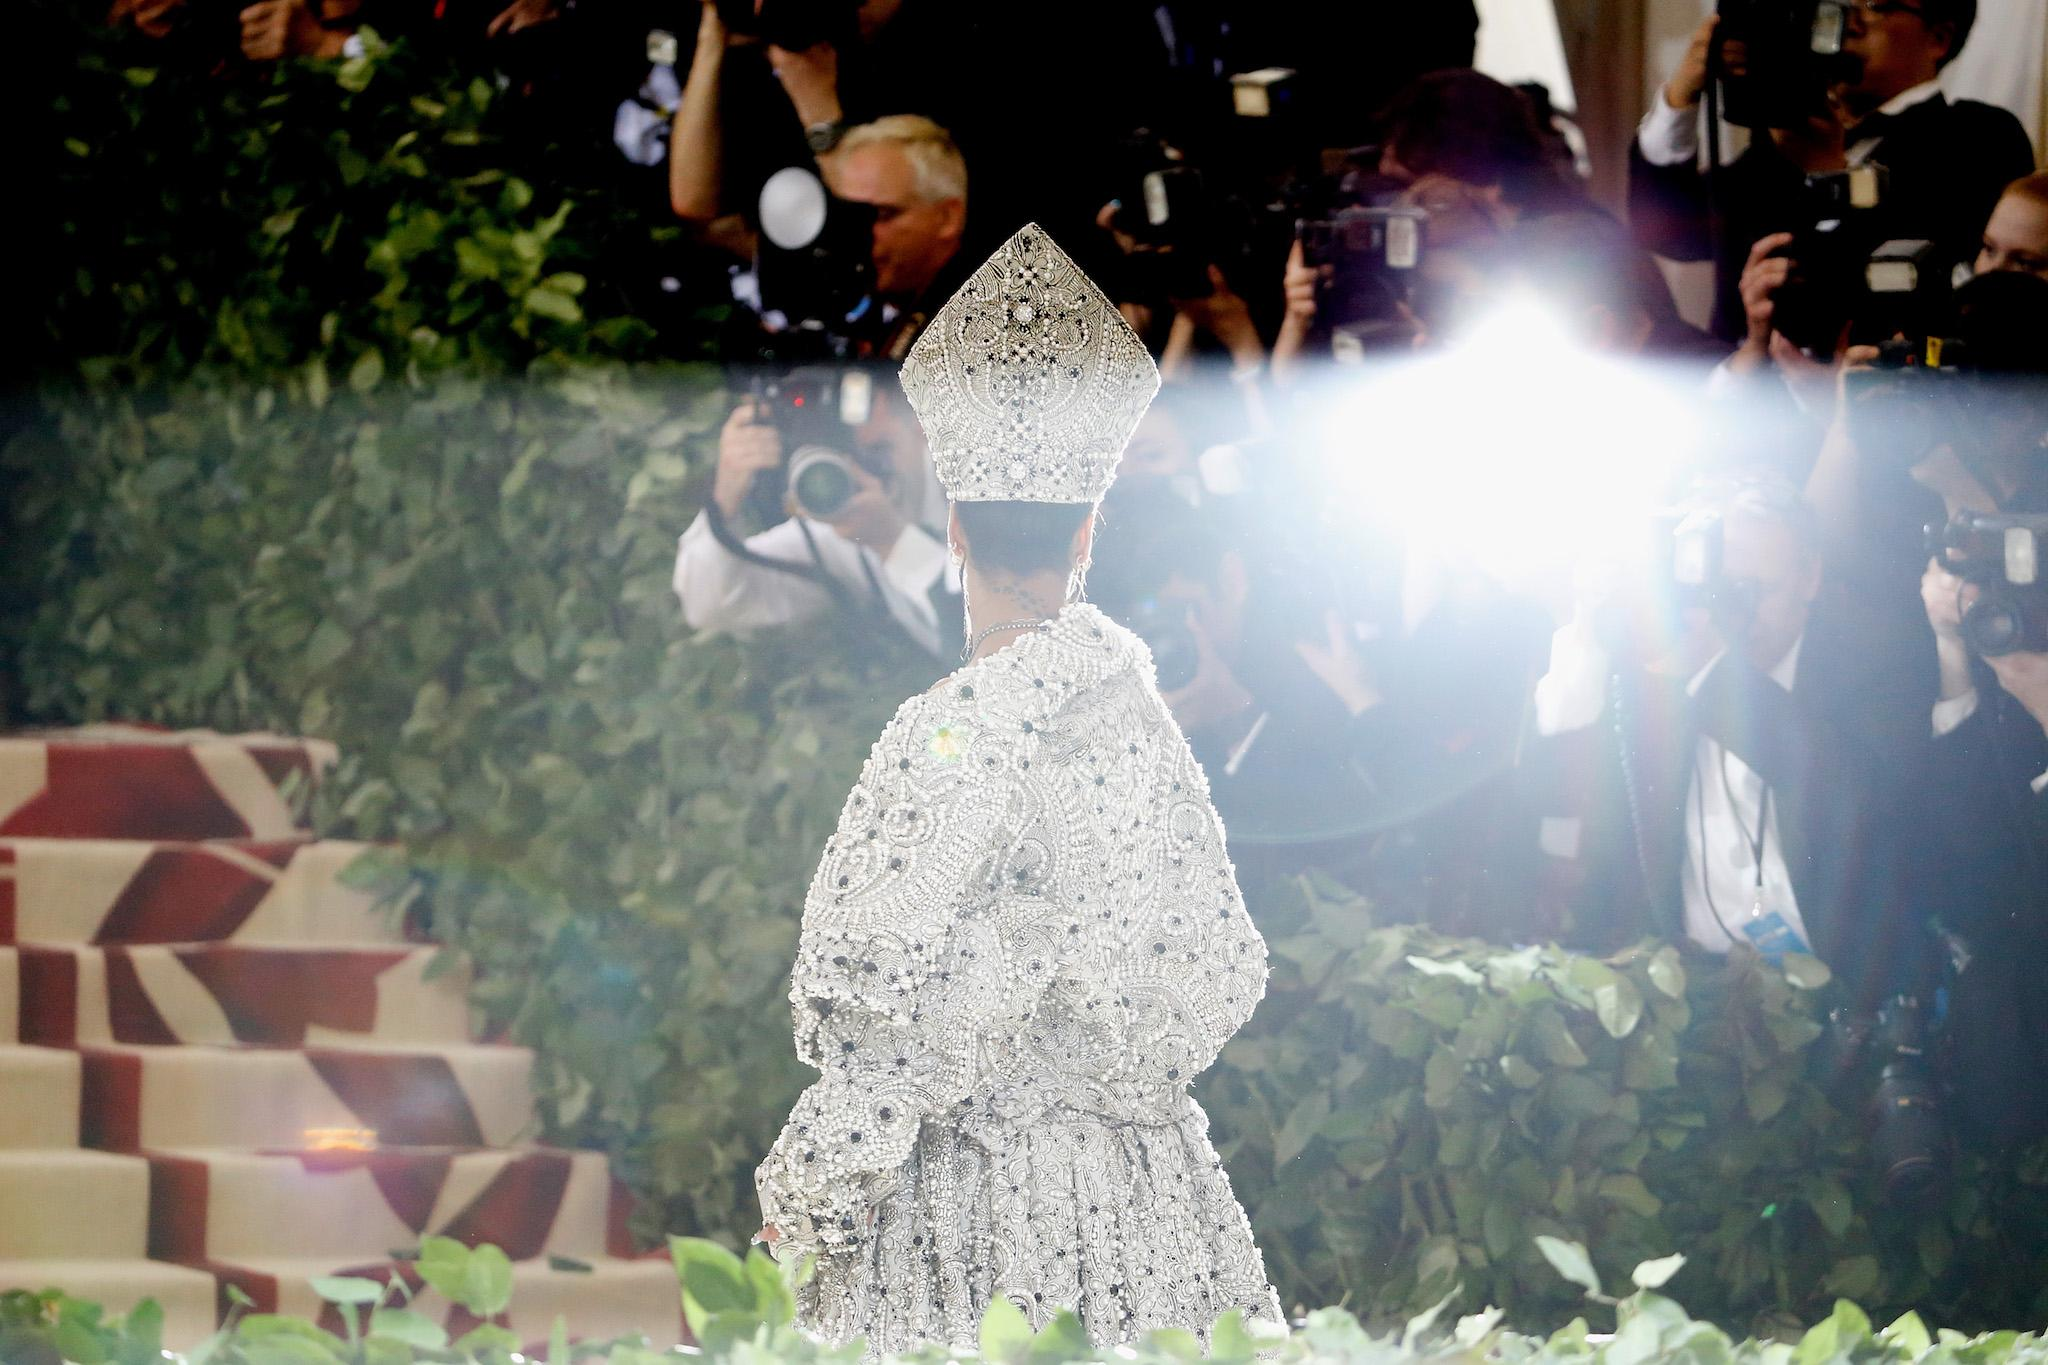 Met Gala 2018: Angry Catholics and conservatives accuse organisers of 'religious appropriation' over theme